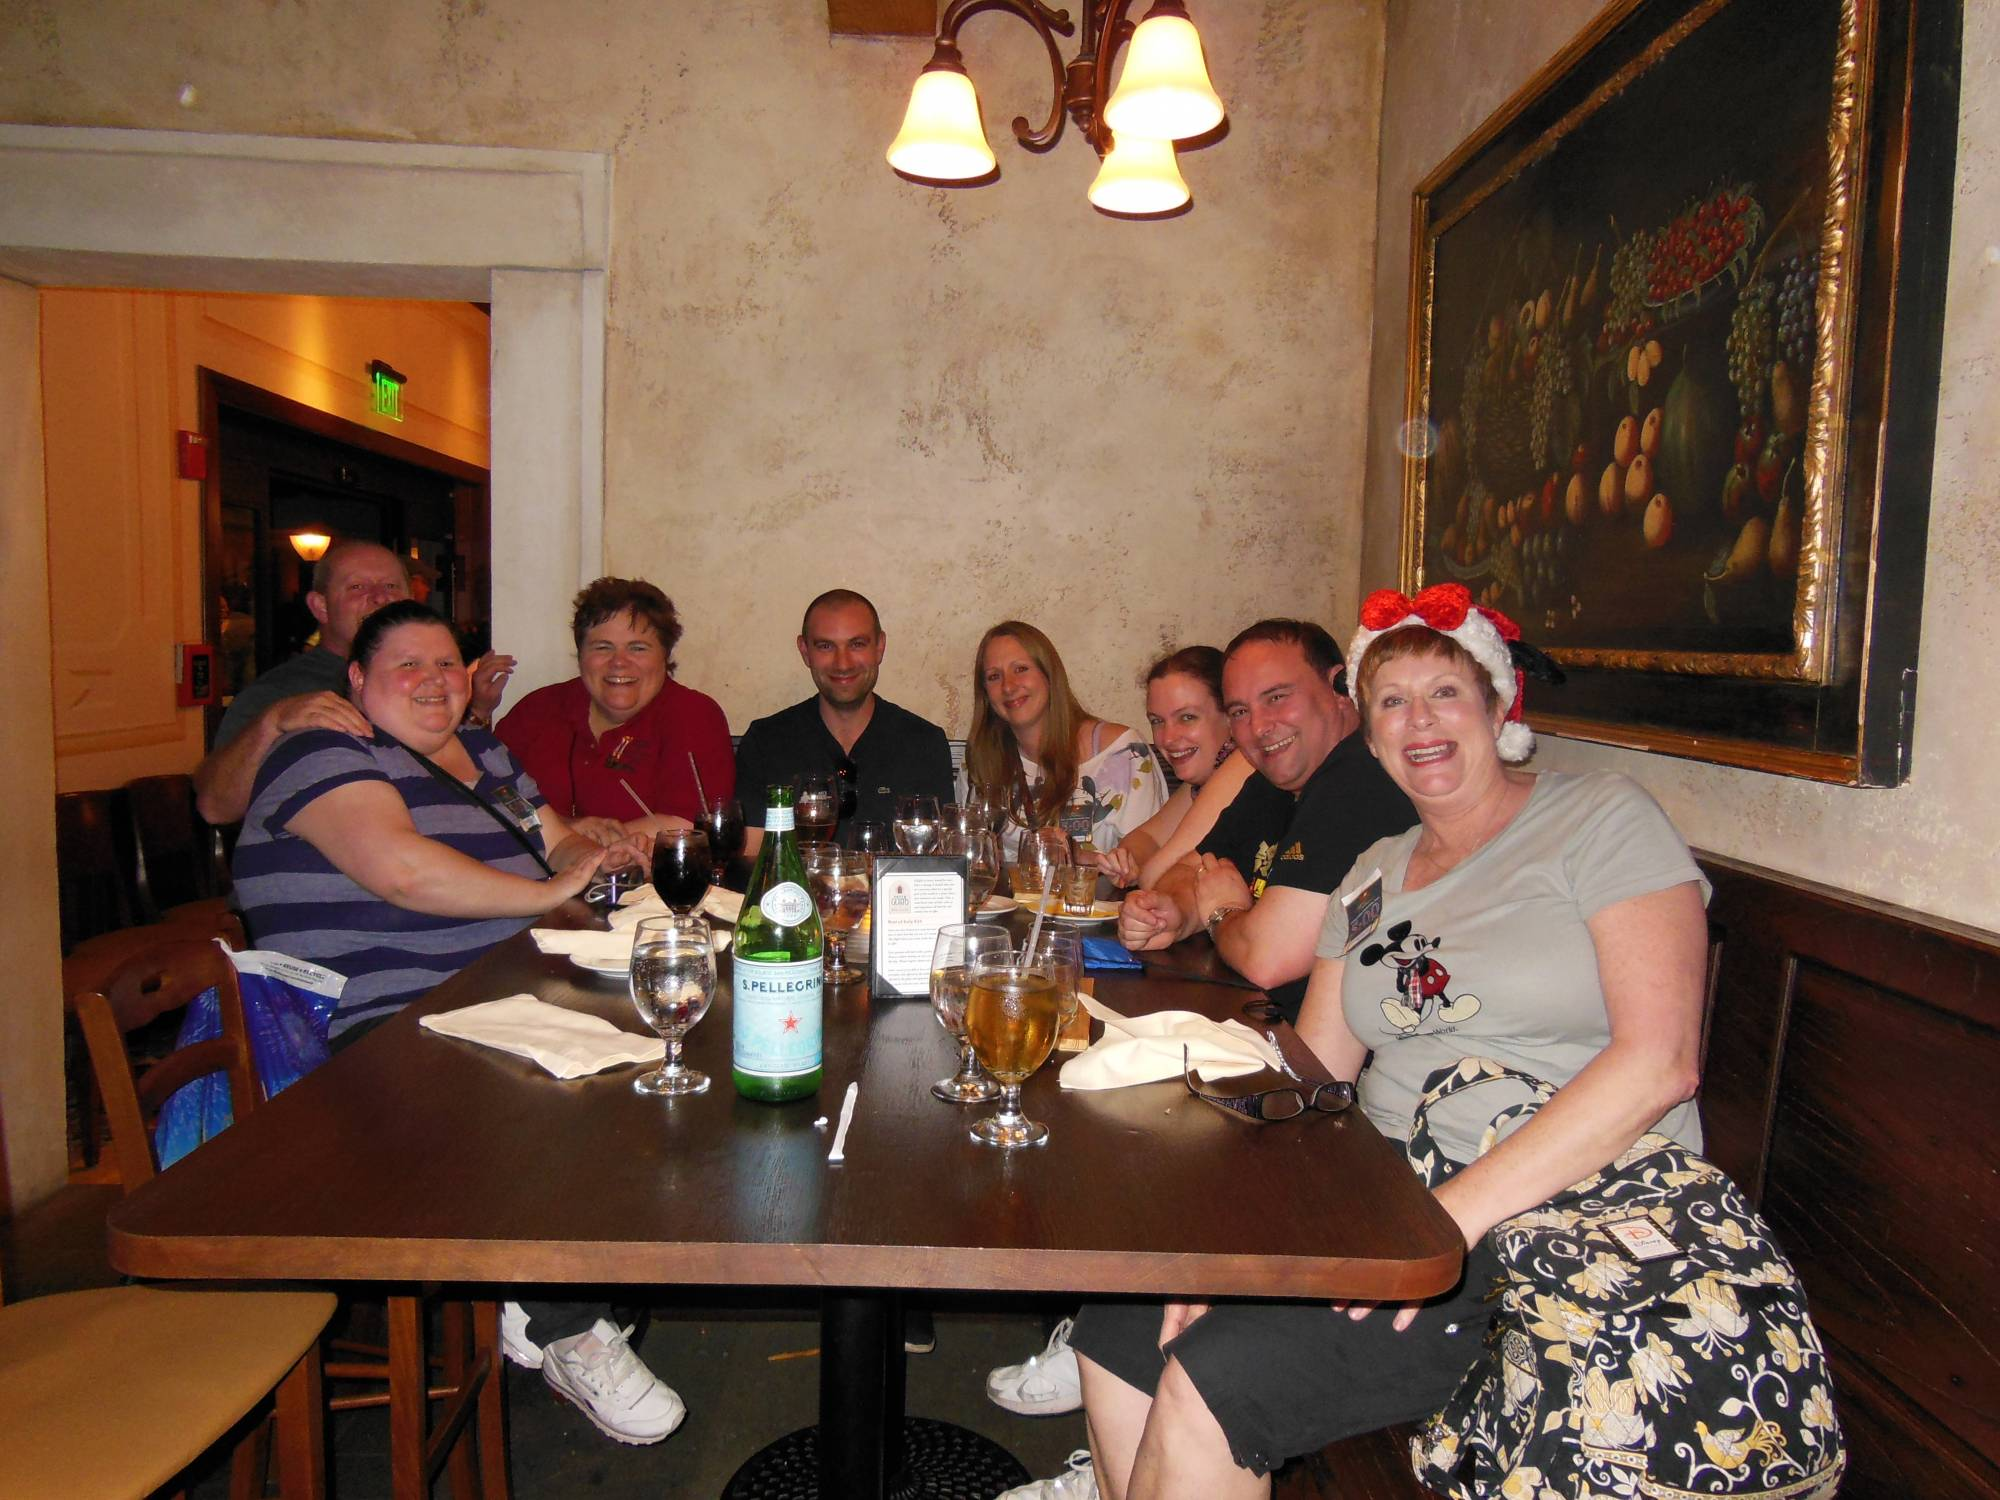 Enjoy a drink and a meal with friends or family at Tutto Gusto in Epcot | PassPorter.com